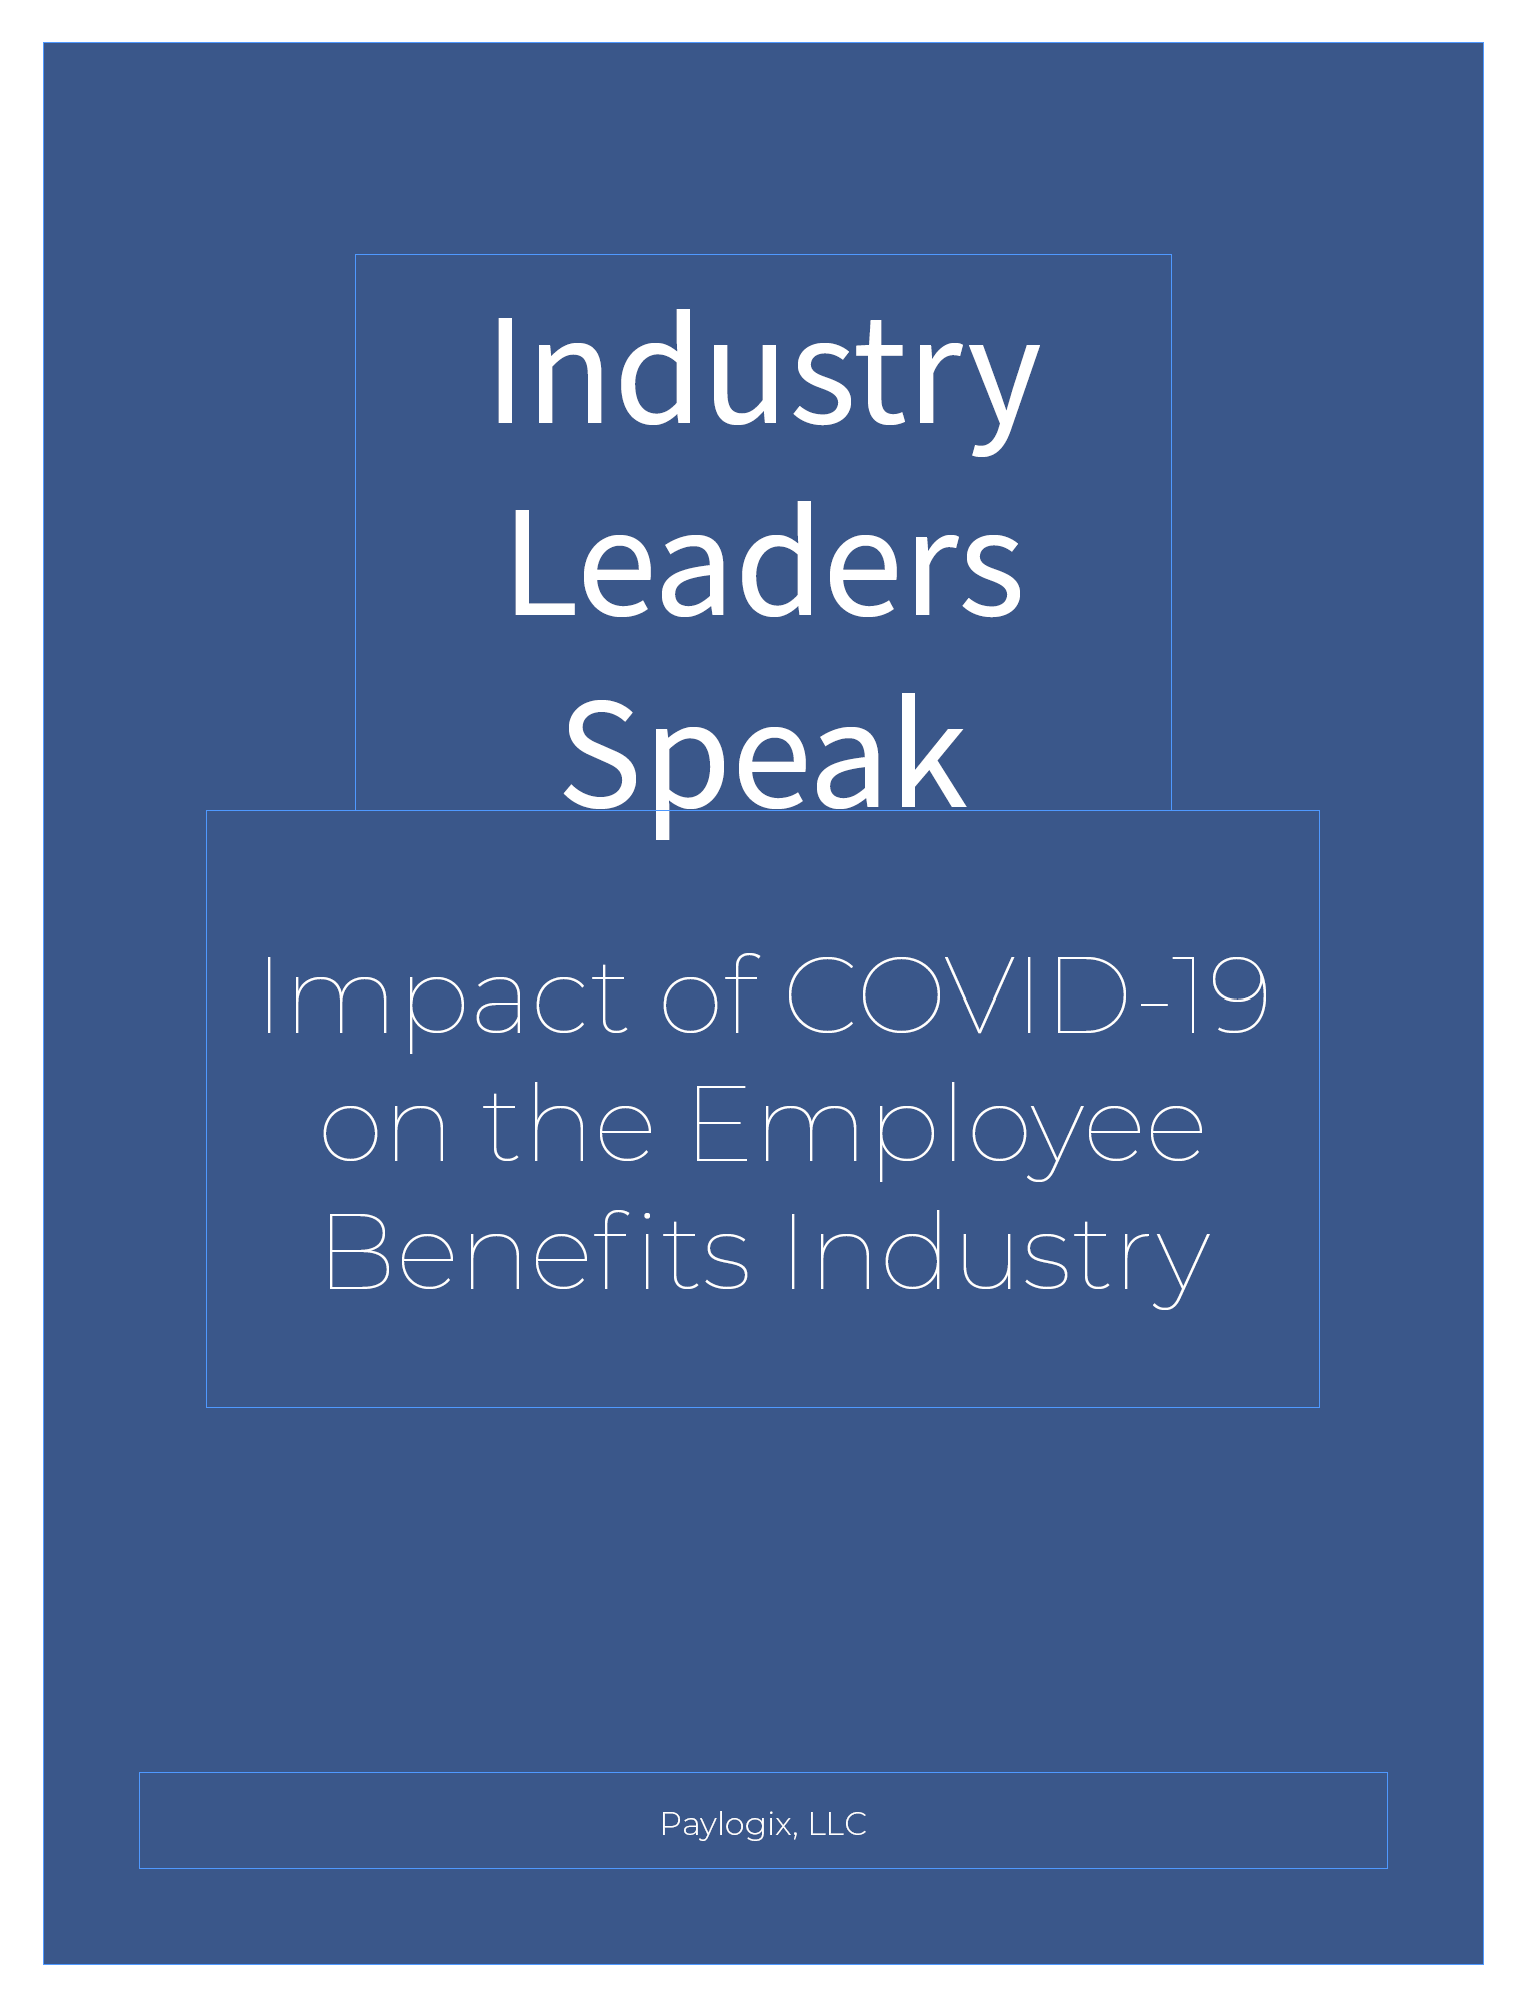 Industry Leaders Speak: COVID 19 Survey